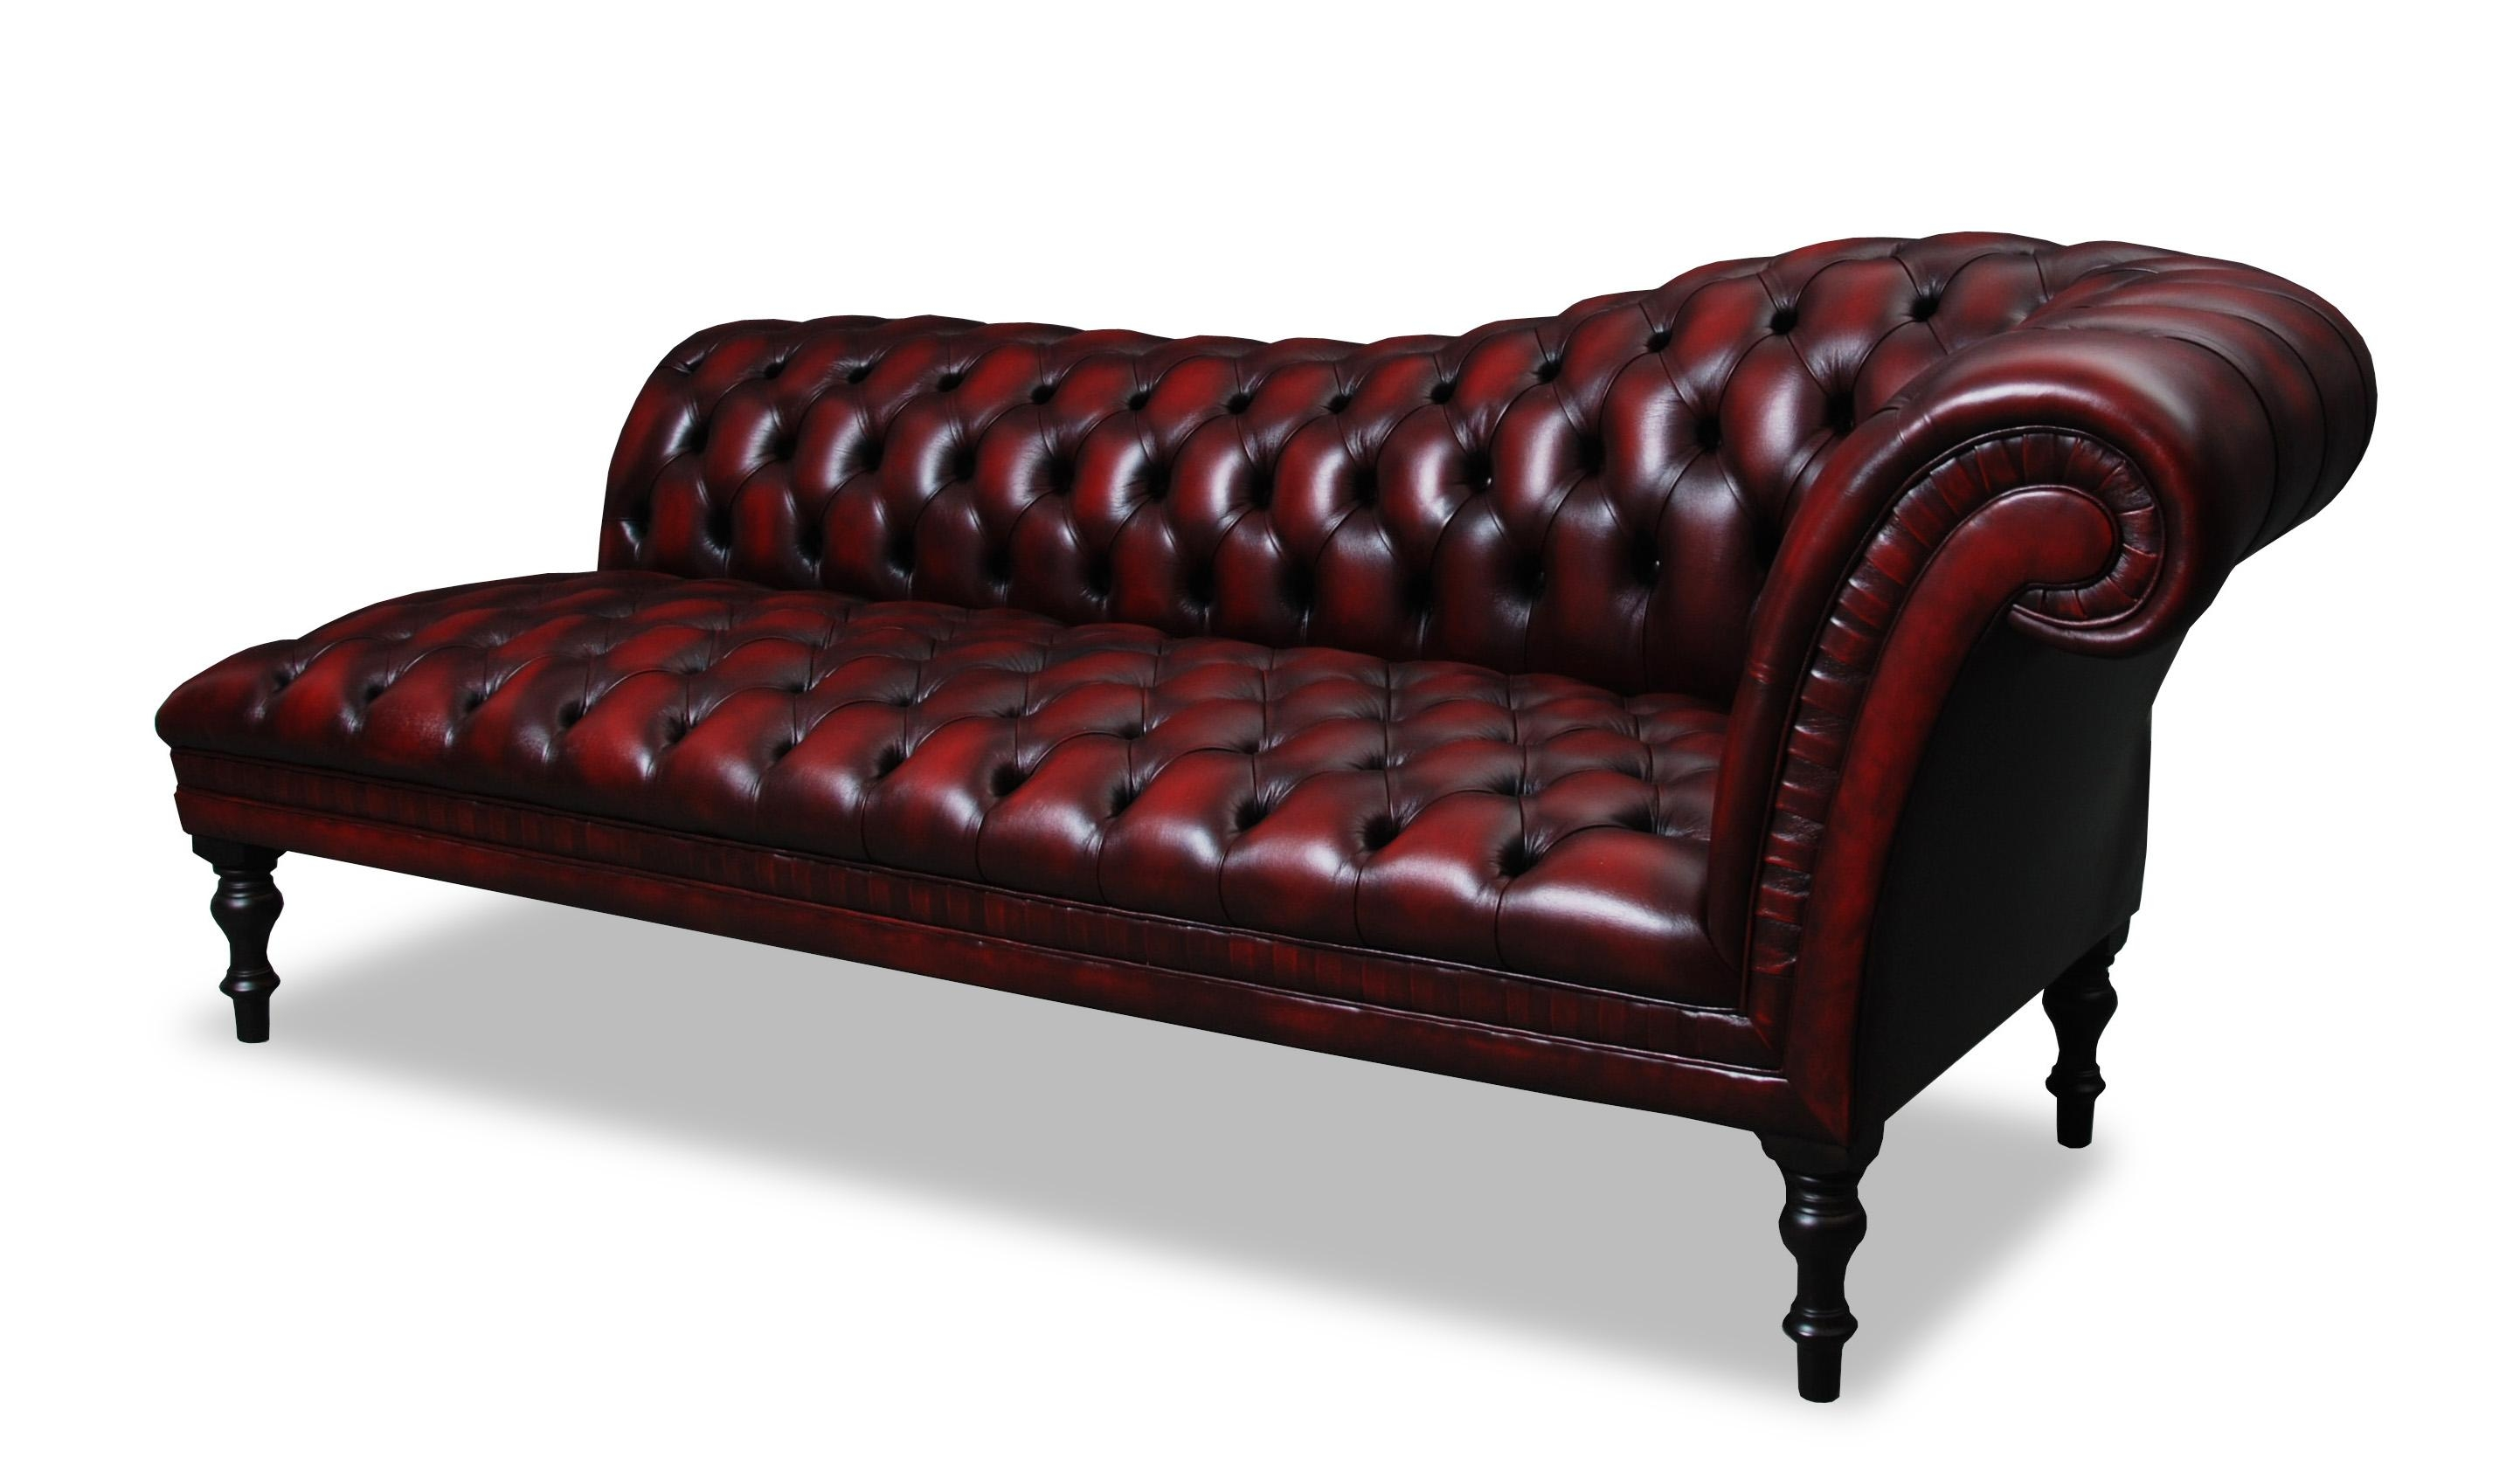 20 inspirations red chesterfield sofas sofa ideas. Black Bedroom Furniture Sets. Home Design Ideas